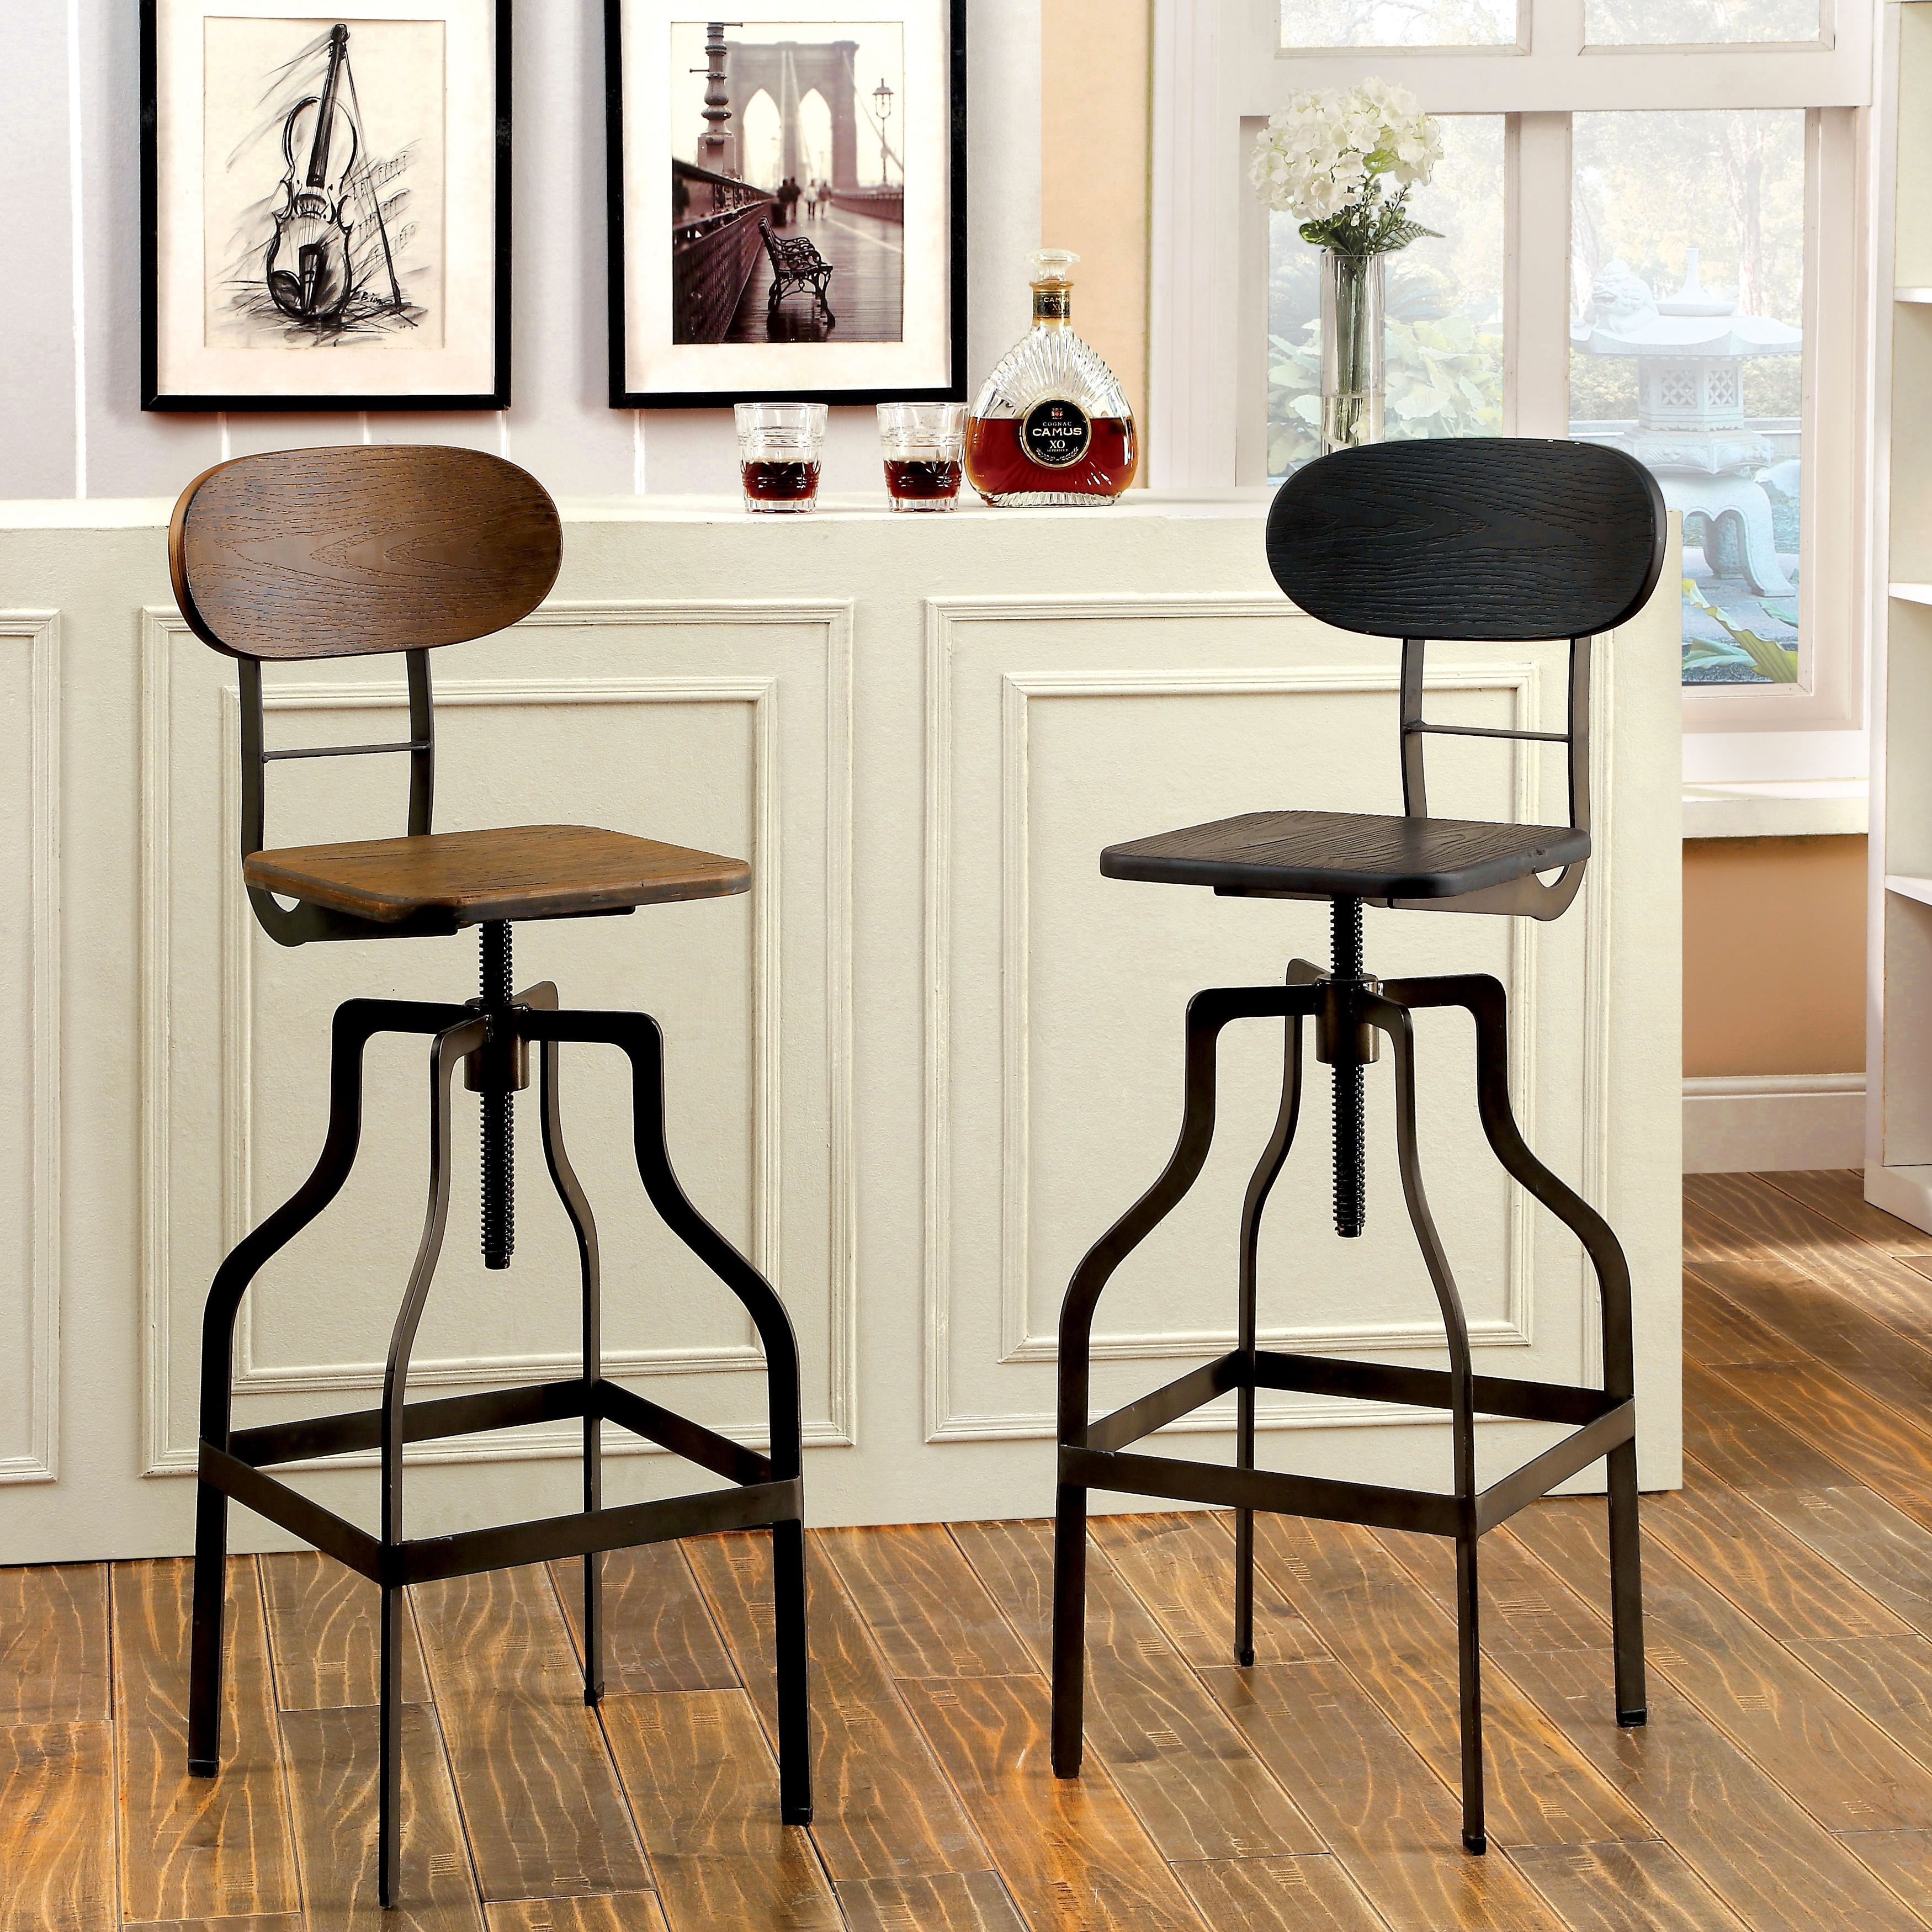 Place This Industrial Style Bar Chair In Any Setting And